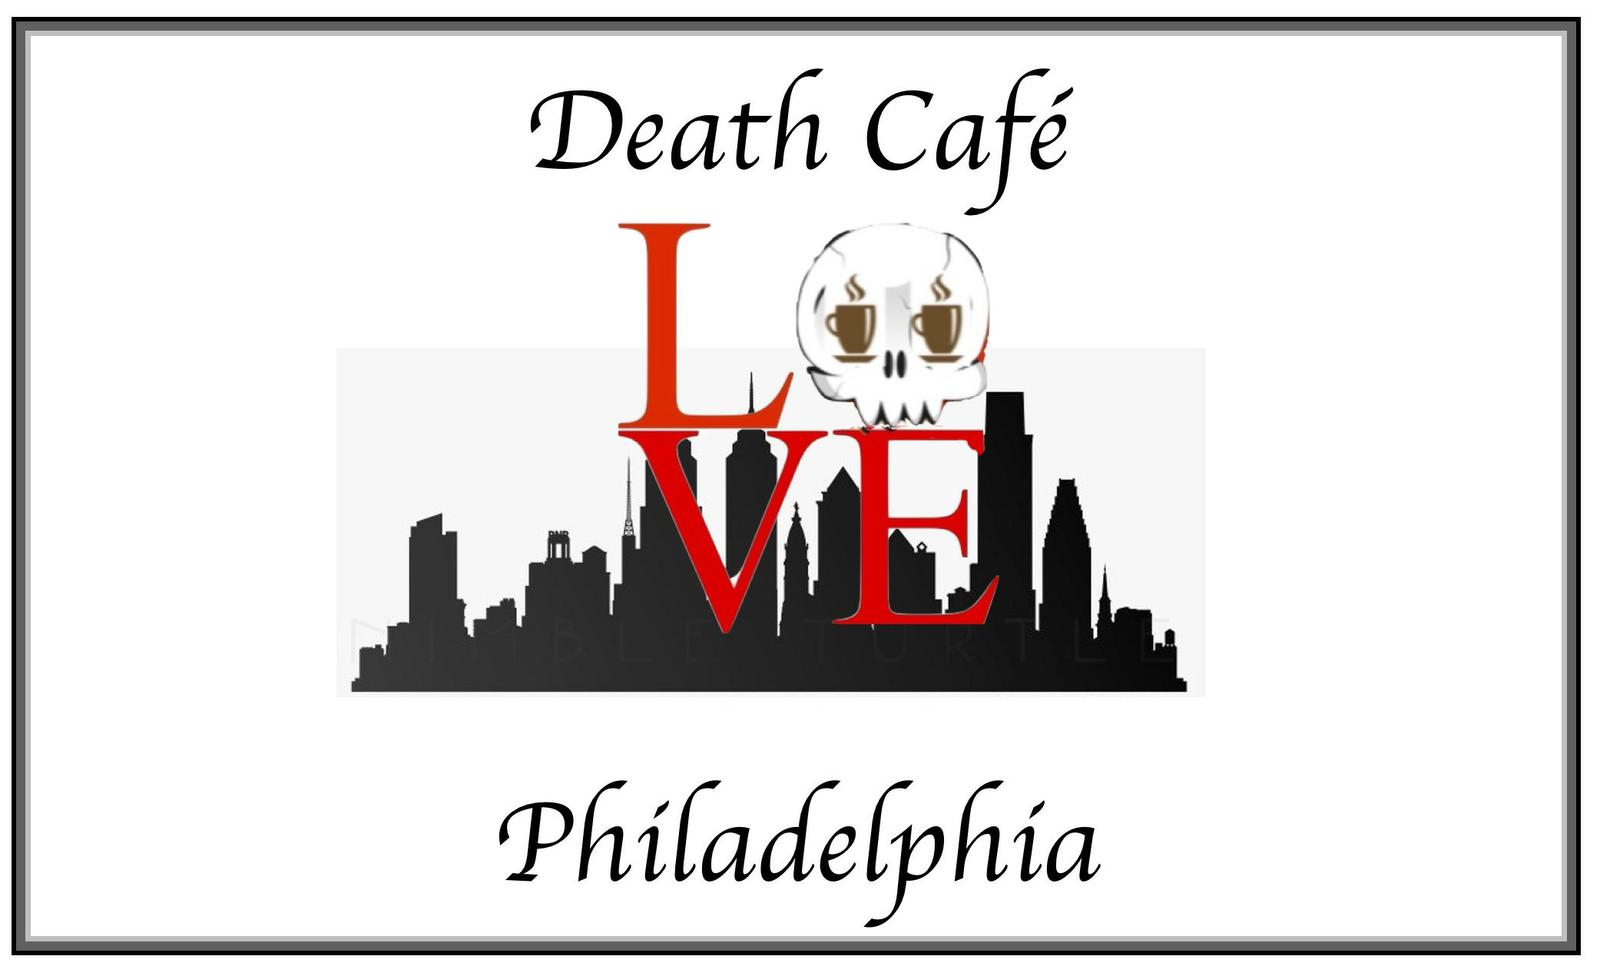 Death Cafe Philadelphia